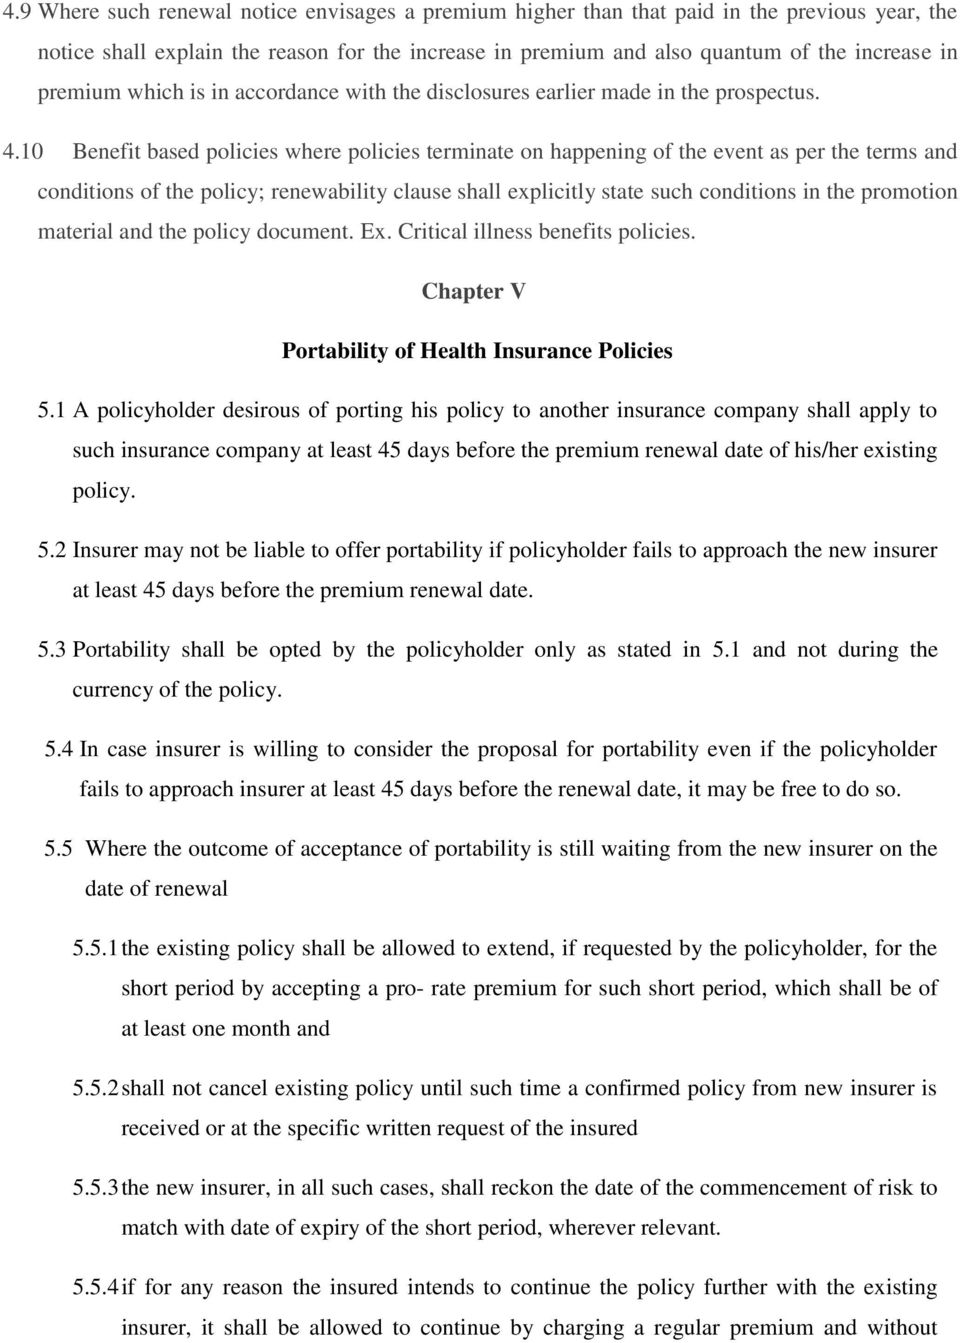 10 Benefit based policies where policies terminate on happening of the event as per the terms and conditions of the policy; renewability clause shall explicitly state such conditions in the promotion